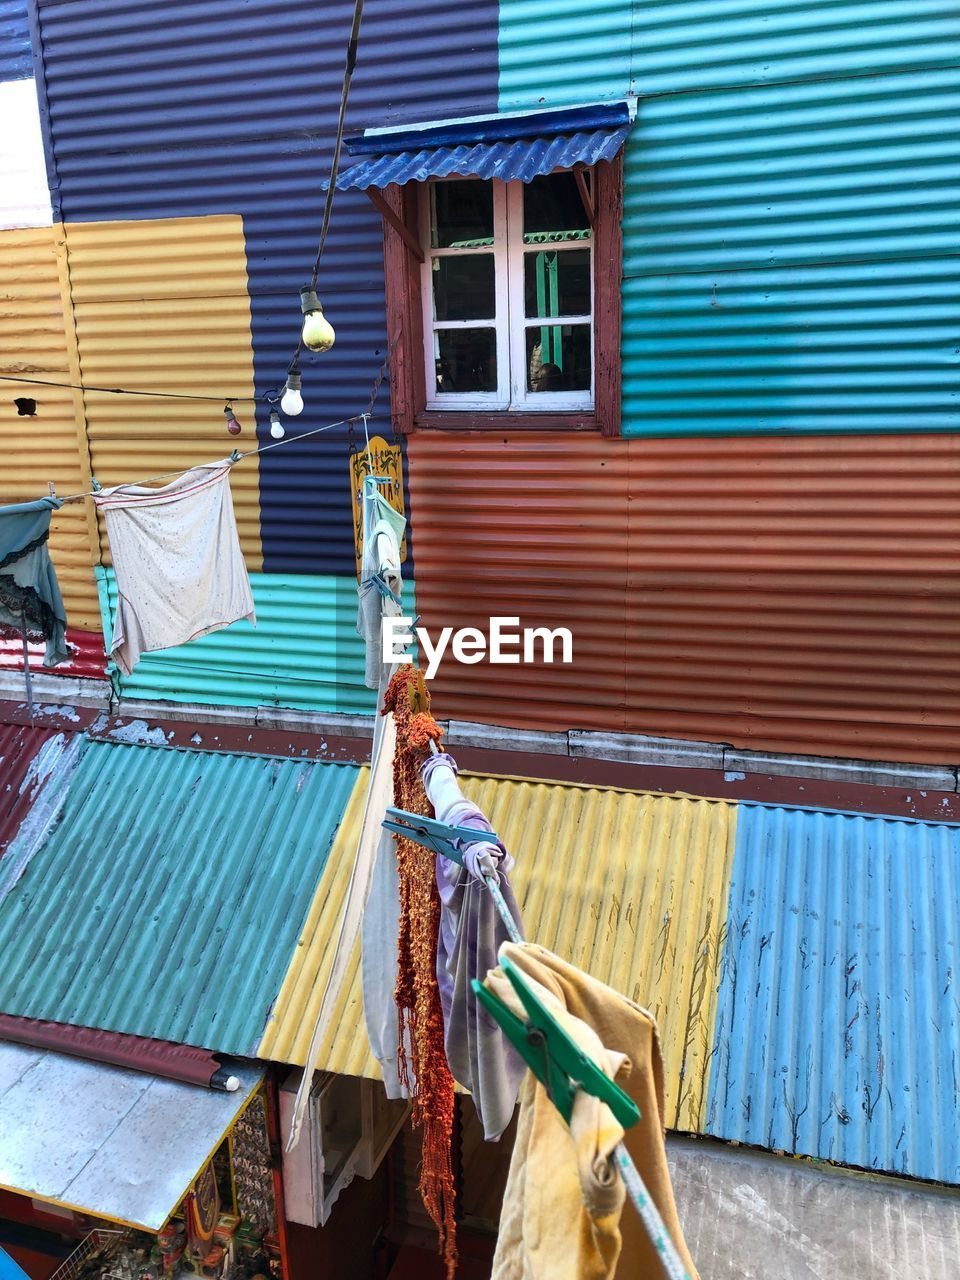 building exterior, architecture, built structure, day, shutter, corrugated iron, iron, building, drying, clothing, textile, hanging, wood - material, outdoors, house, no people, window, corrugated, cleaning, metal